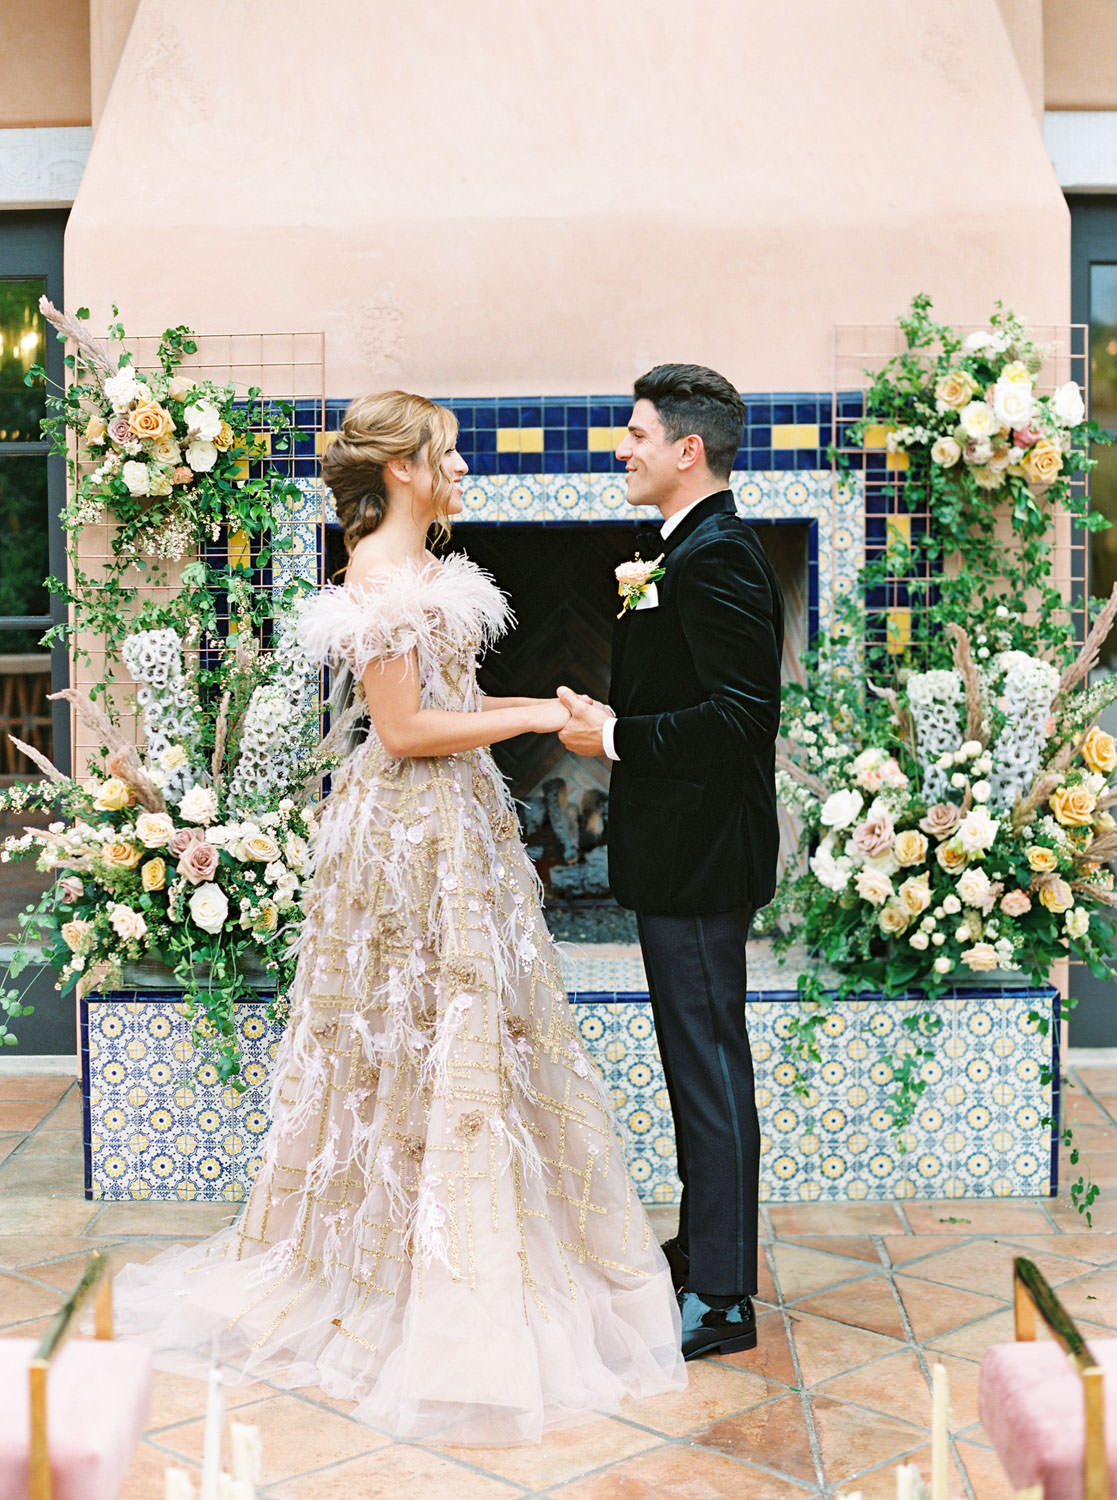 Couple kissing in front of pink fireplace with blue and golden tiles for ceremony backdrop adorned with large floral installations. Marchesa couture gown with blush feathers, gold lines, and floral embellishments. Honey and Beekeeper Inspired Wedding on sunrise terrace patio at Rancho Valencia on film by Cavin Elizabeth Photography